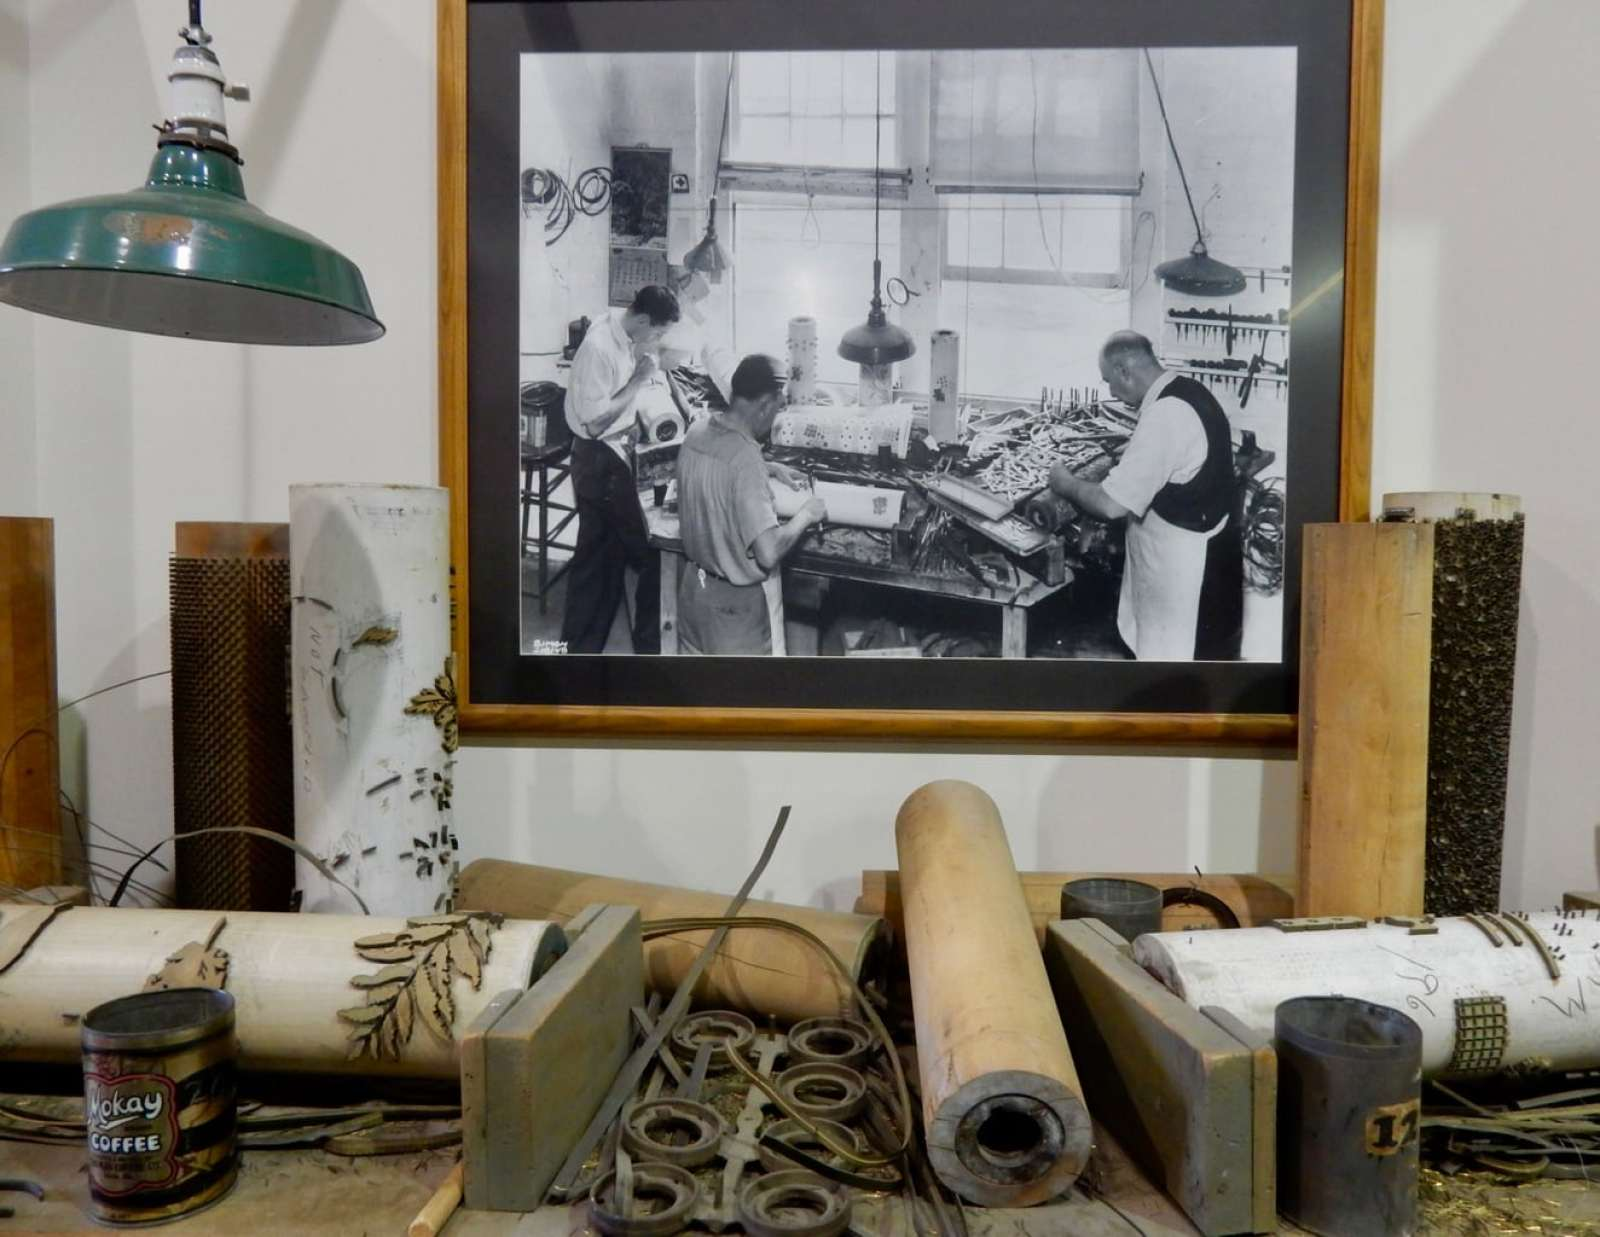 Wallpaper artisans - Agriculture And Industrial Museum York PA